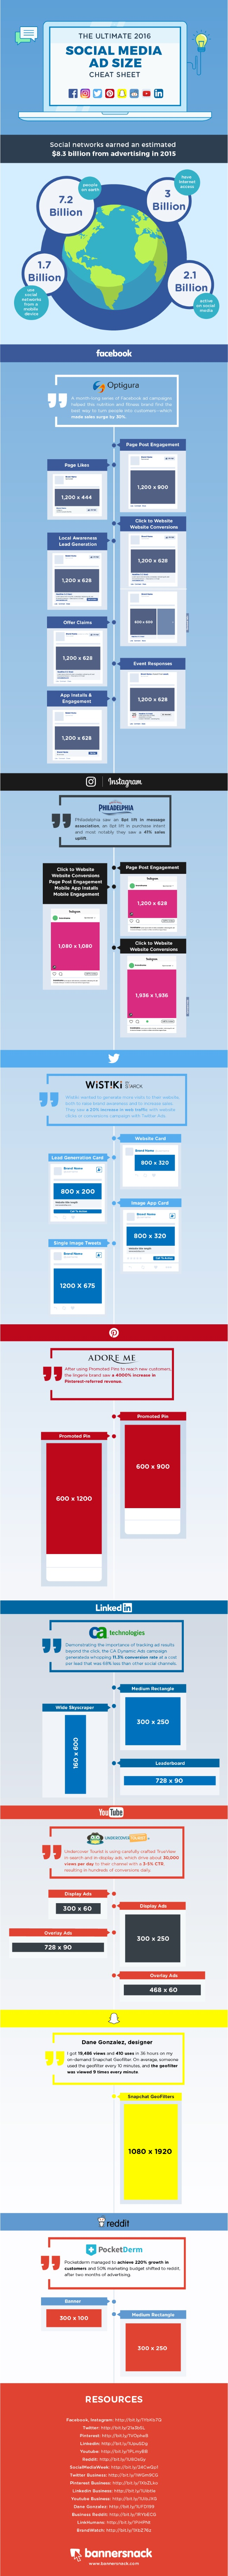 wersm-bannersnack-social-media-ad-sizes-a-cheat-sheet